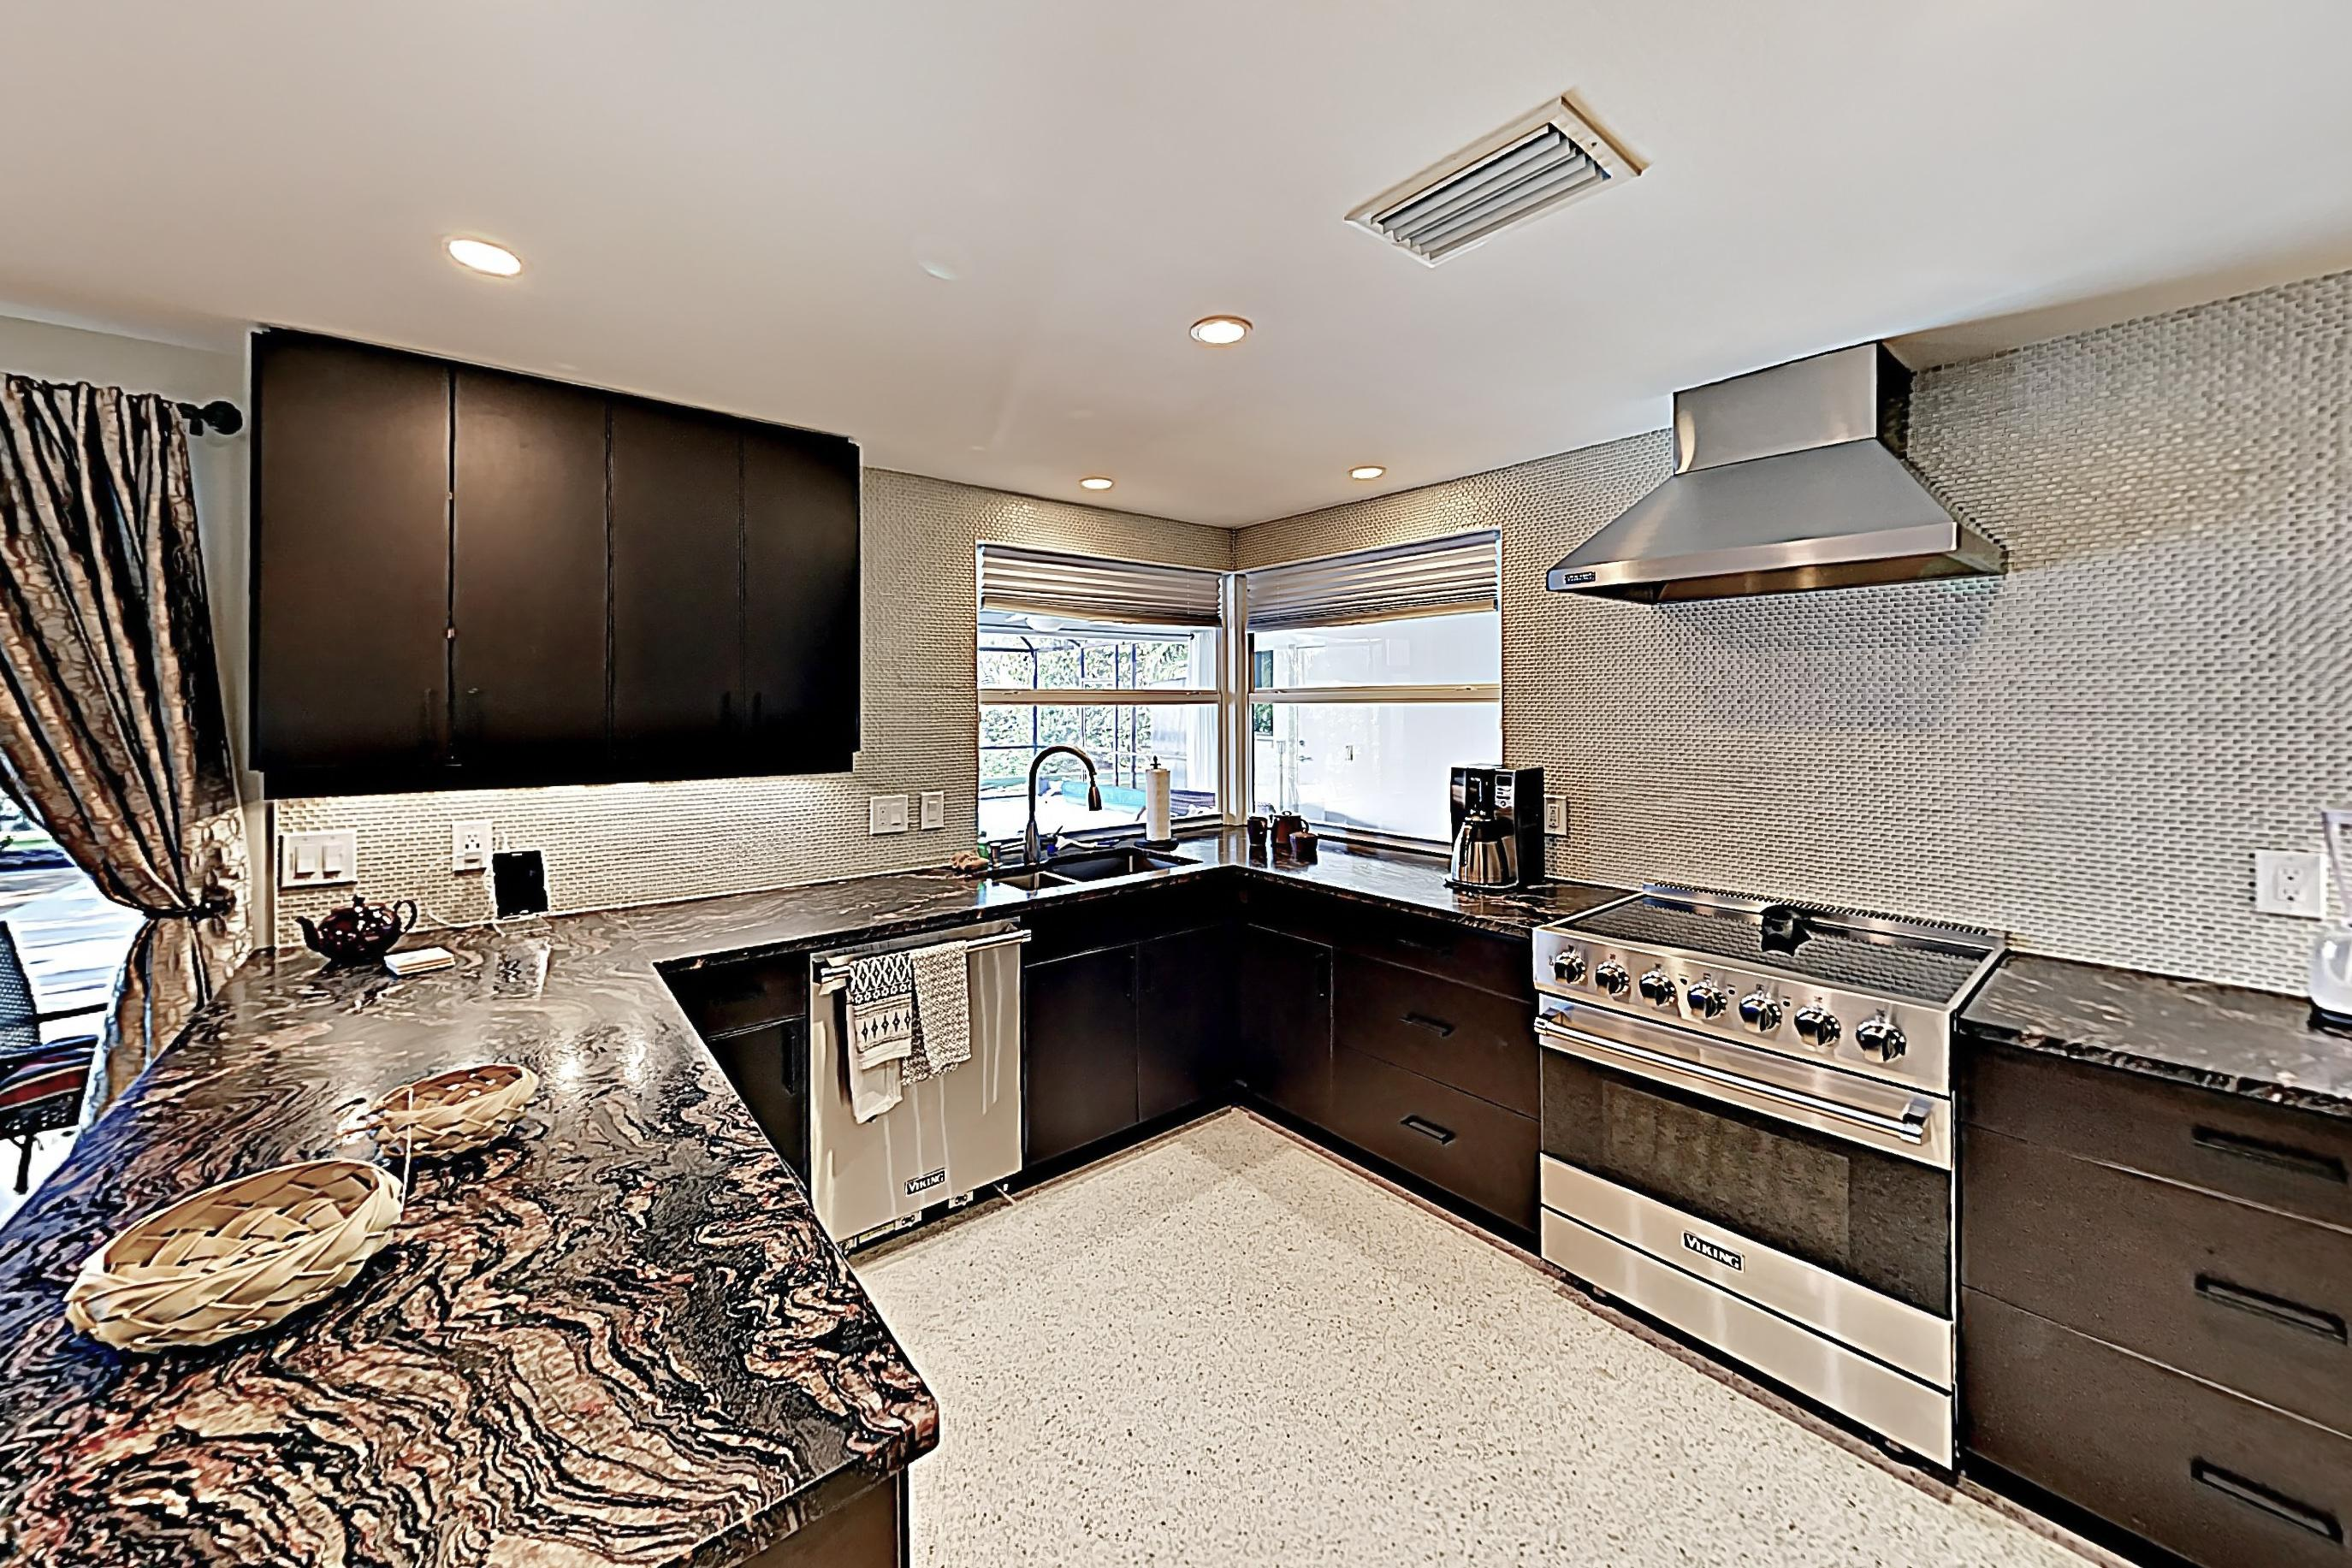 The chef's kitchen boats granite countertops and stainless steel Viking appliances.